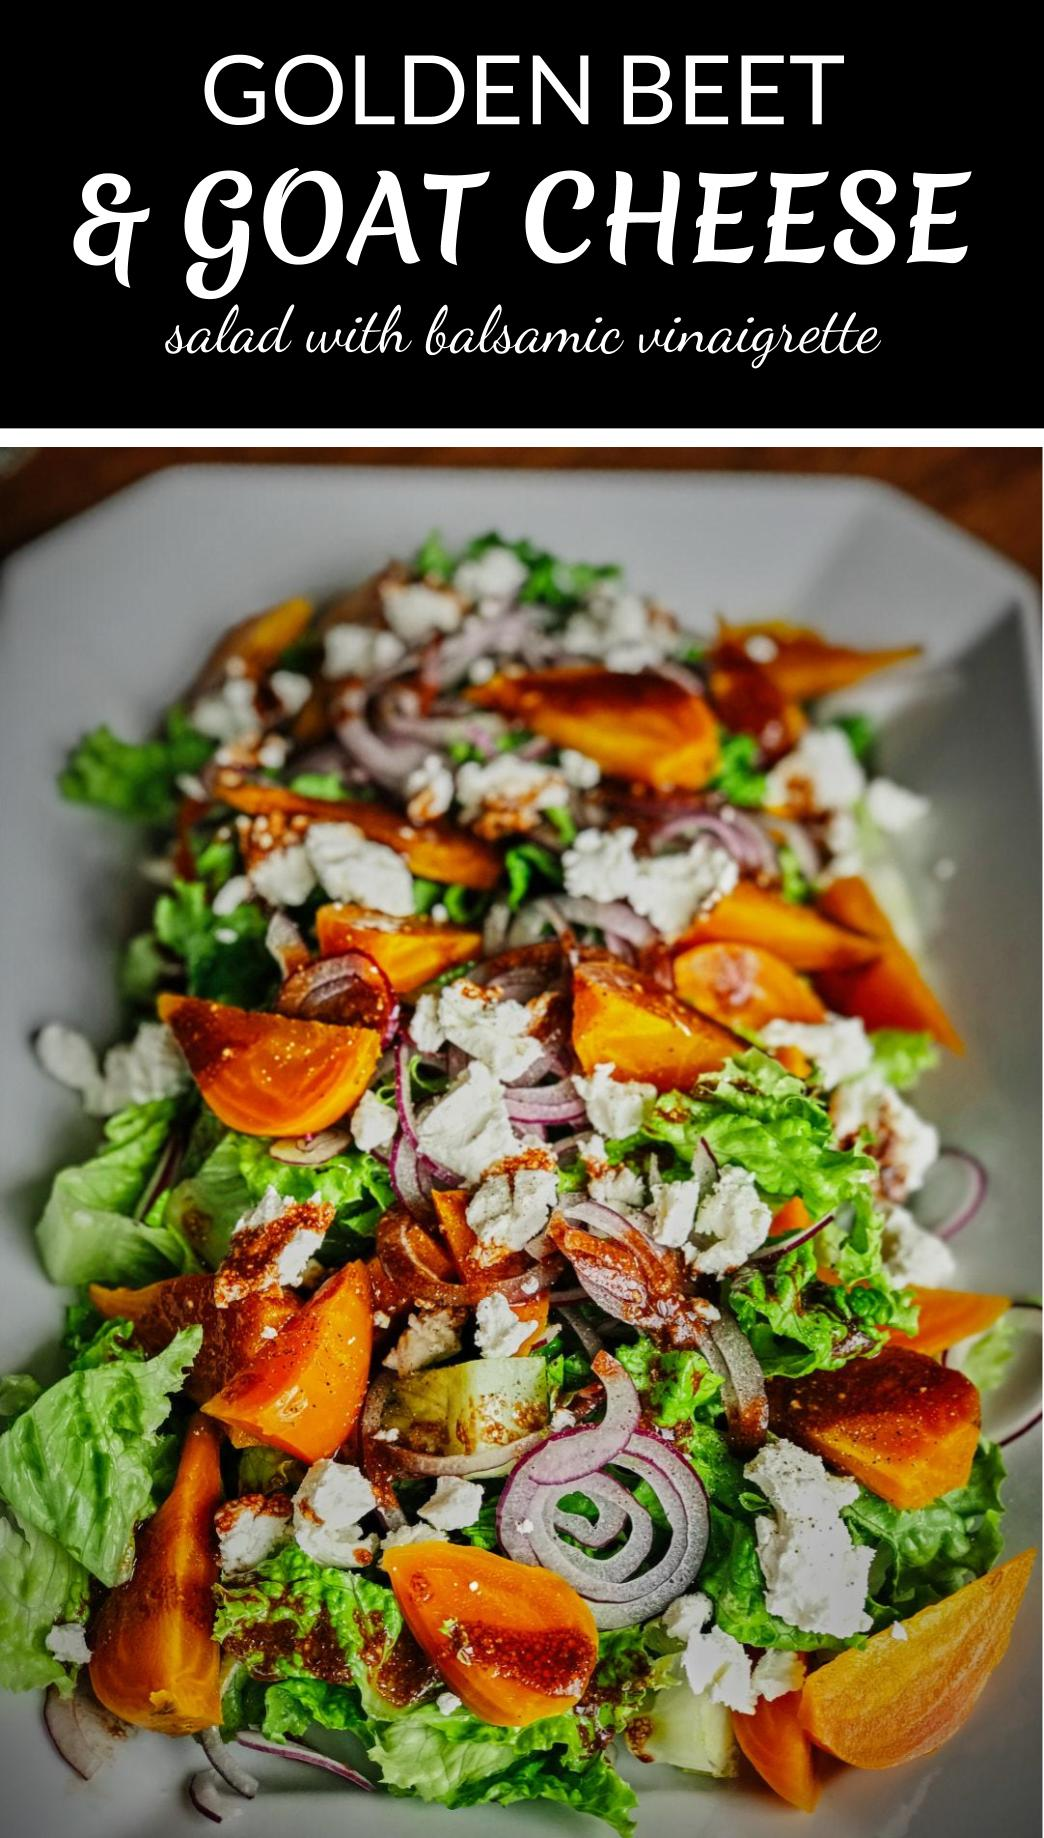 Golden Beet & Goat Cheese Salad | Proportional Plate